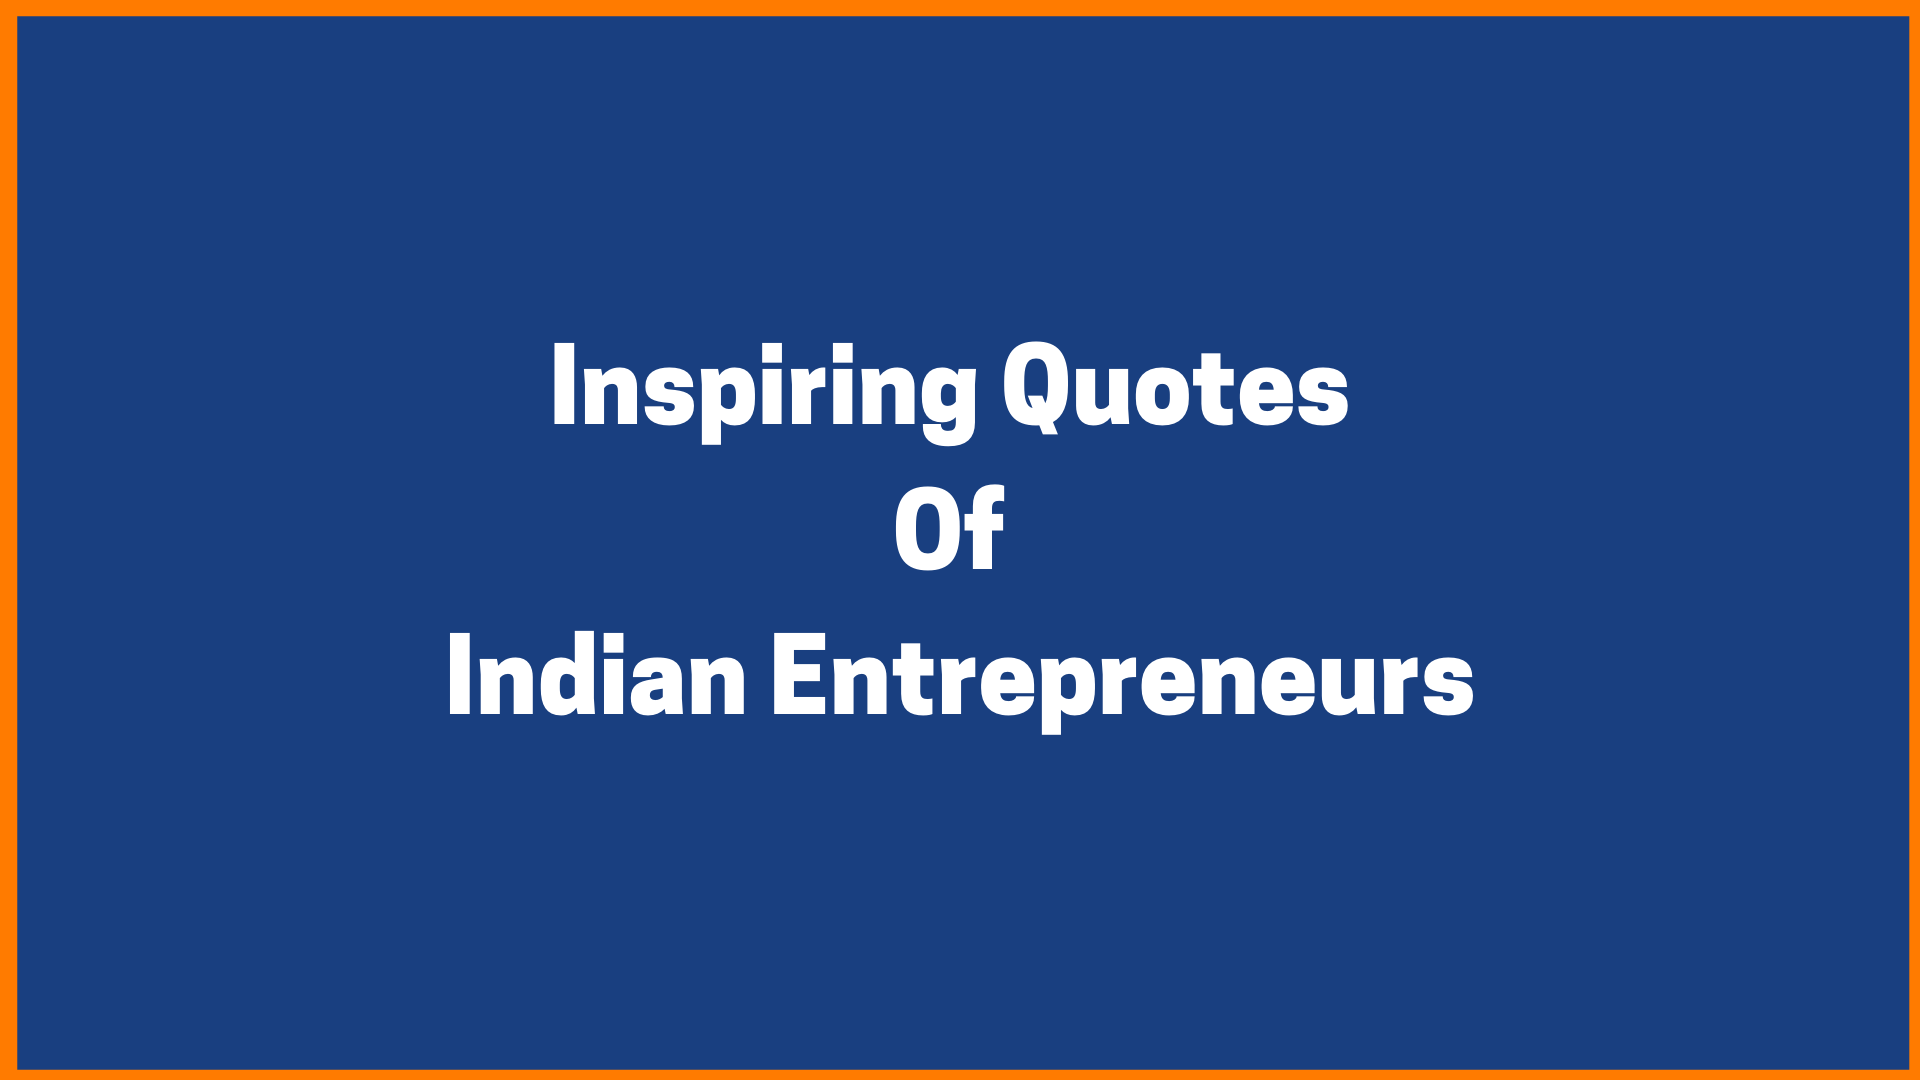 Inspiring Quotes By Indian Entrepreneurs [Exhaustive List]